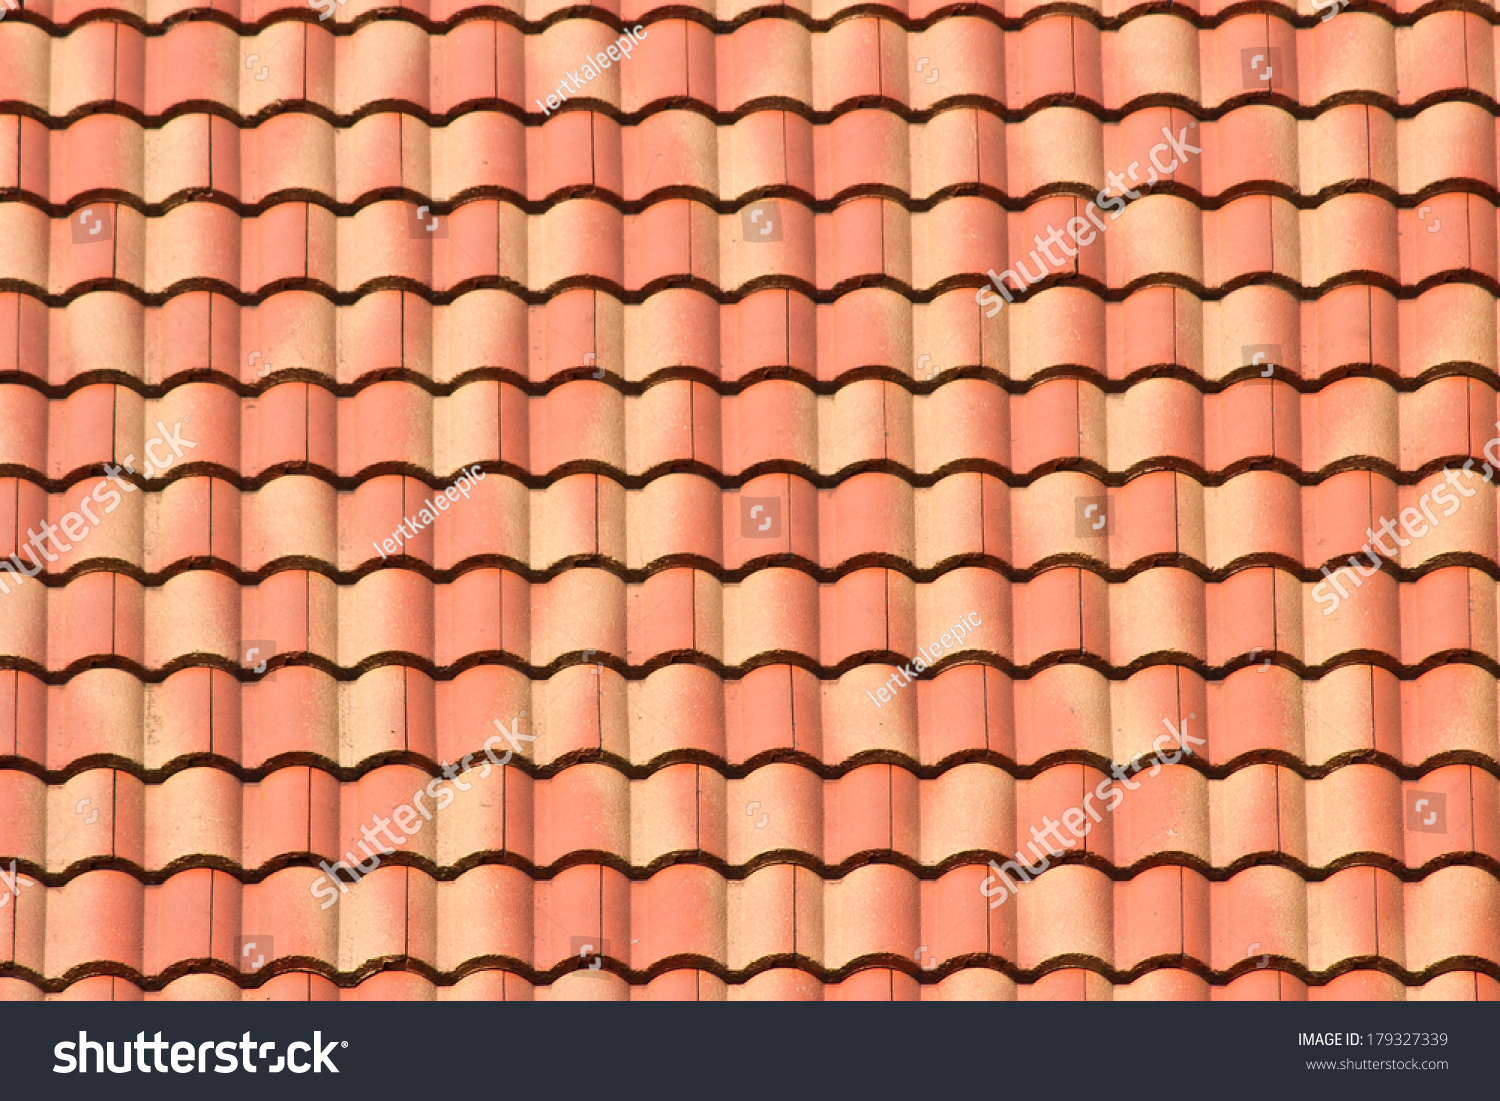 Ceramic tile roof texture background stock photo 179327339 ceramic tile roof texture background dailygadgetfo Images